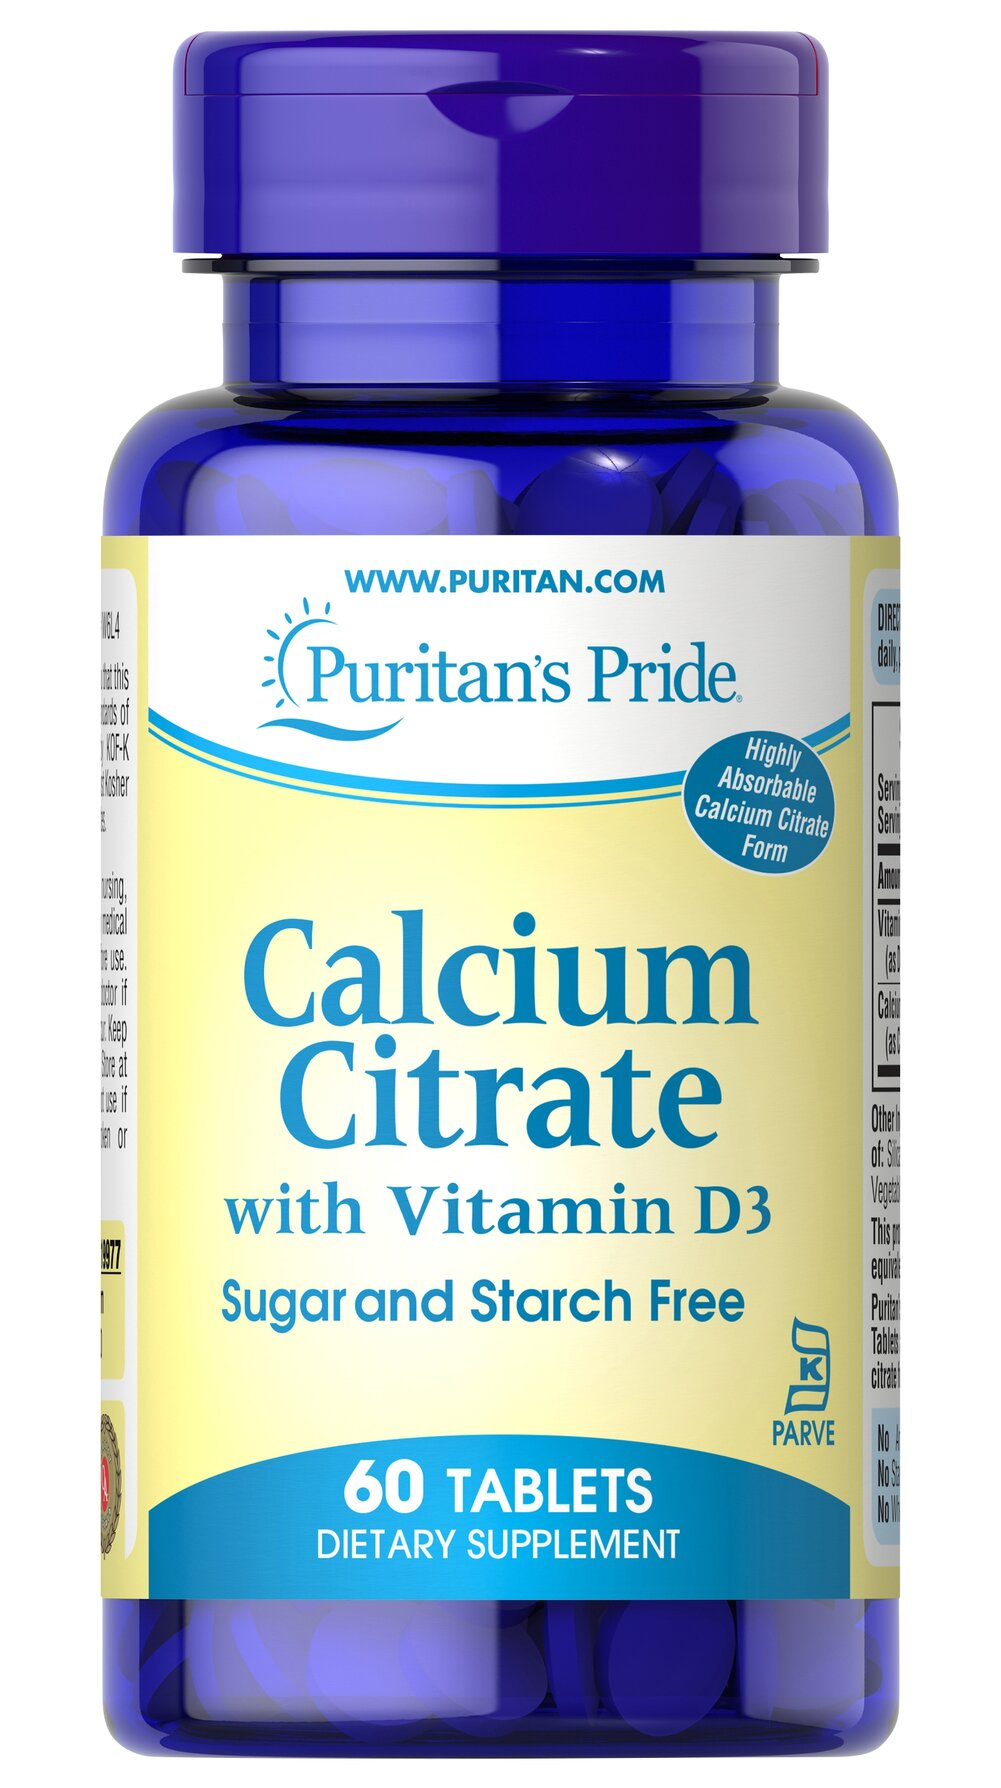 Calcium Citrate with Vitamin D Kosher <p>A Kosher/Vegetarian formulation of Calcium Citrate with Vitamin D – a potent combination for bone health and more!**</p><p>Made from Calcium Citrate – a highly absorbable form of this essential mineral</p><p>Calcium and Vitamin D work together to support bone and teeth health**</p><p>Promotes immune system health**</p><p>Prepared under KOF-K Kosher Supervision</p> 60 Tablets 1000 mg/600 IU $12.49